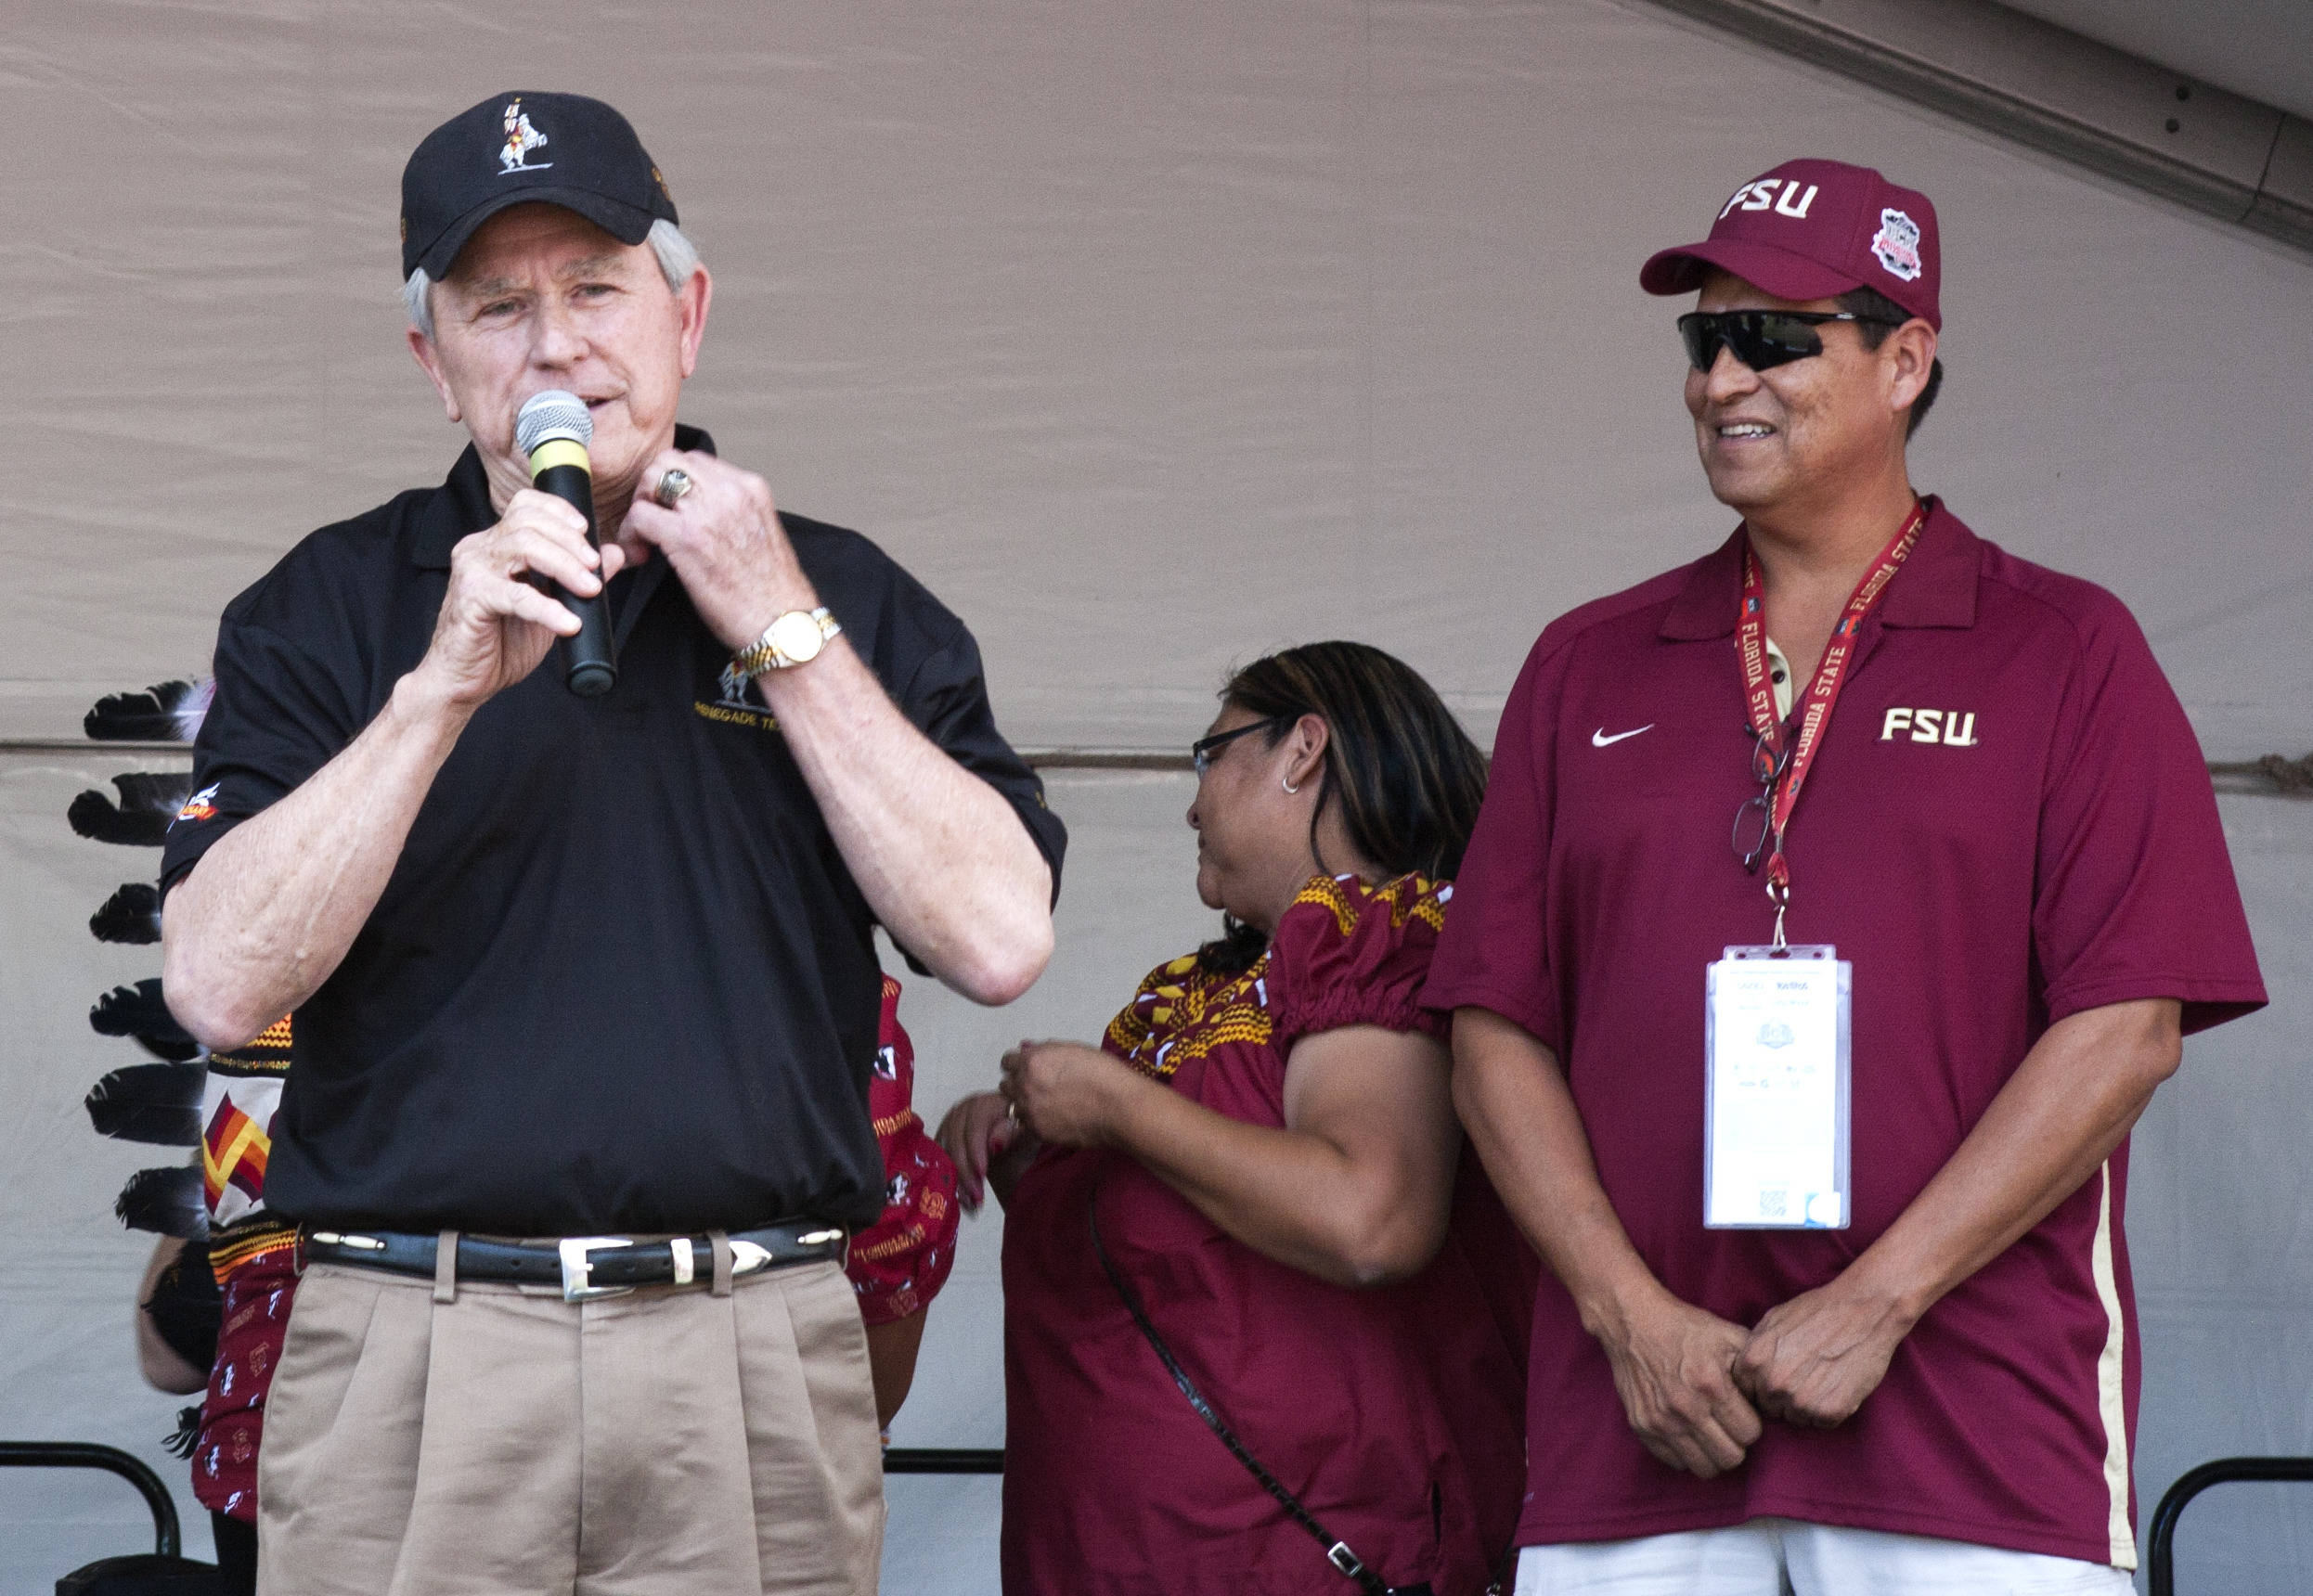 Bill Durham explaining his vision and the how Renegade and Osceola began in 1965. FSU at BCS Championship, Rose Bowl, Pasadena, CA,  1-06-14,  (Photo by Steve Musco)